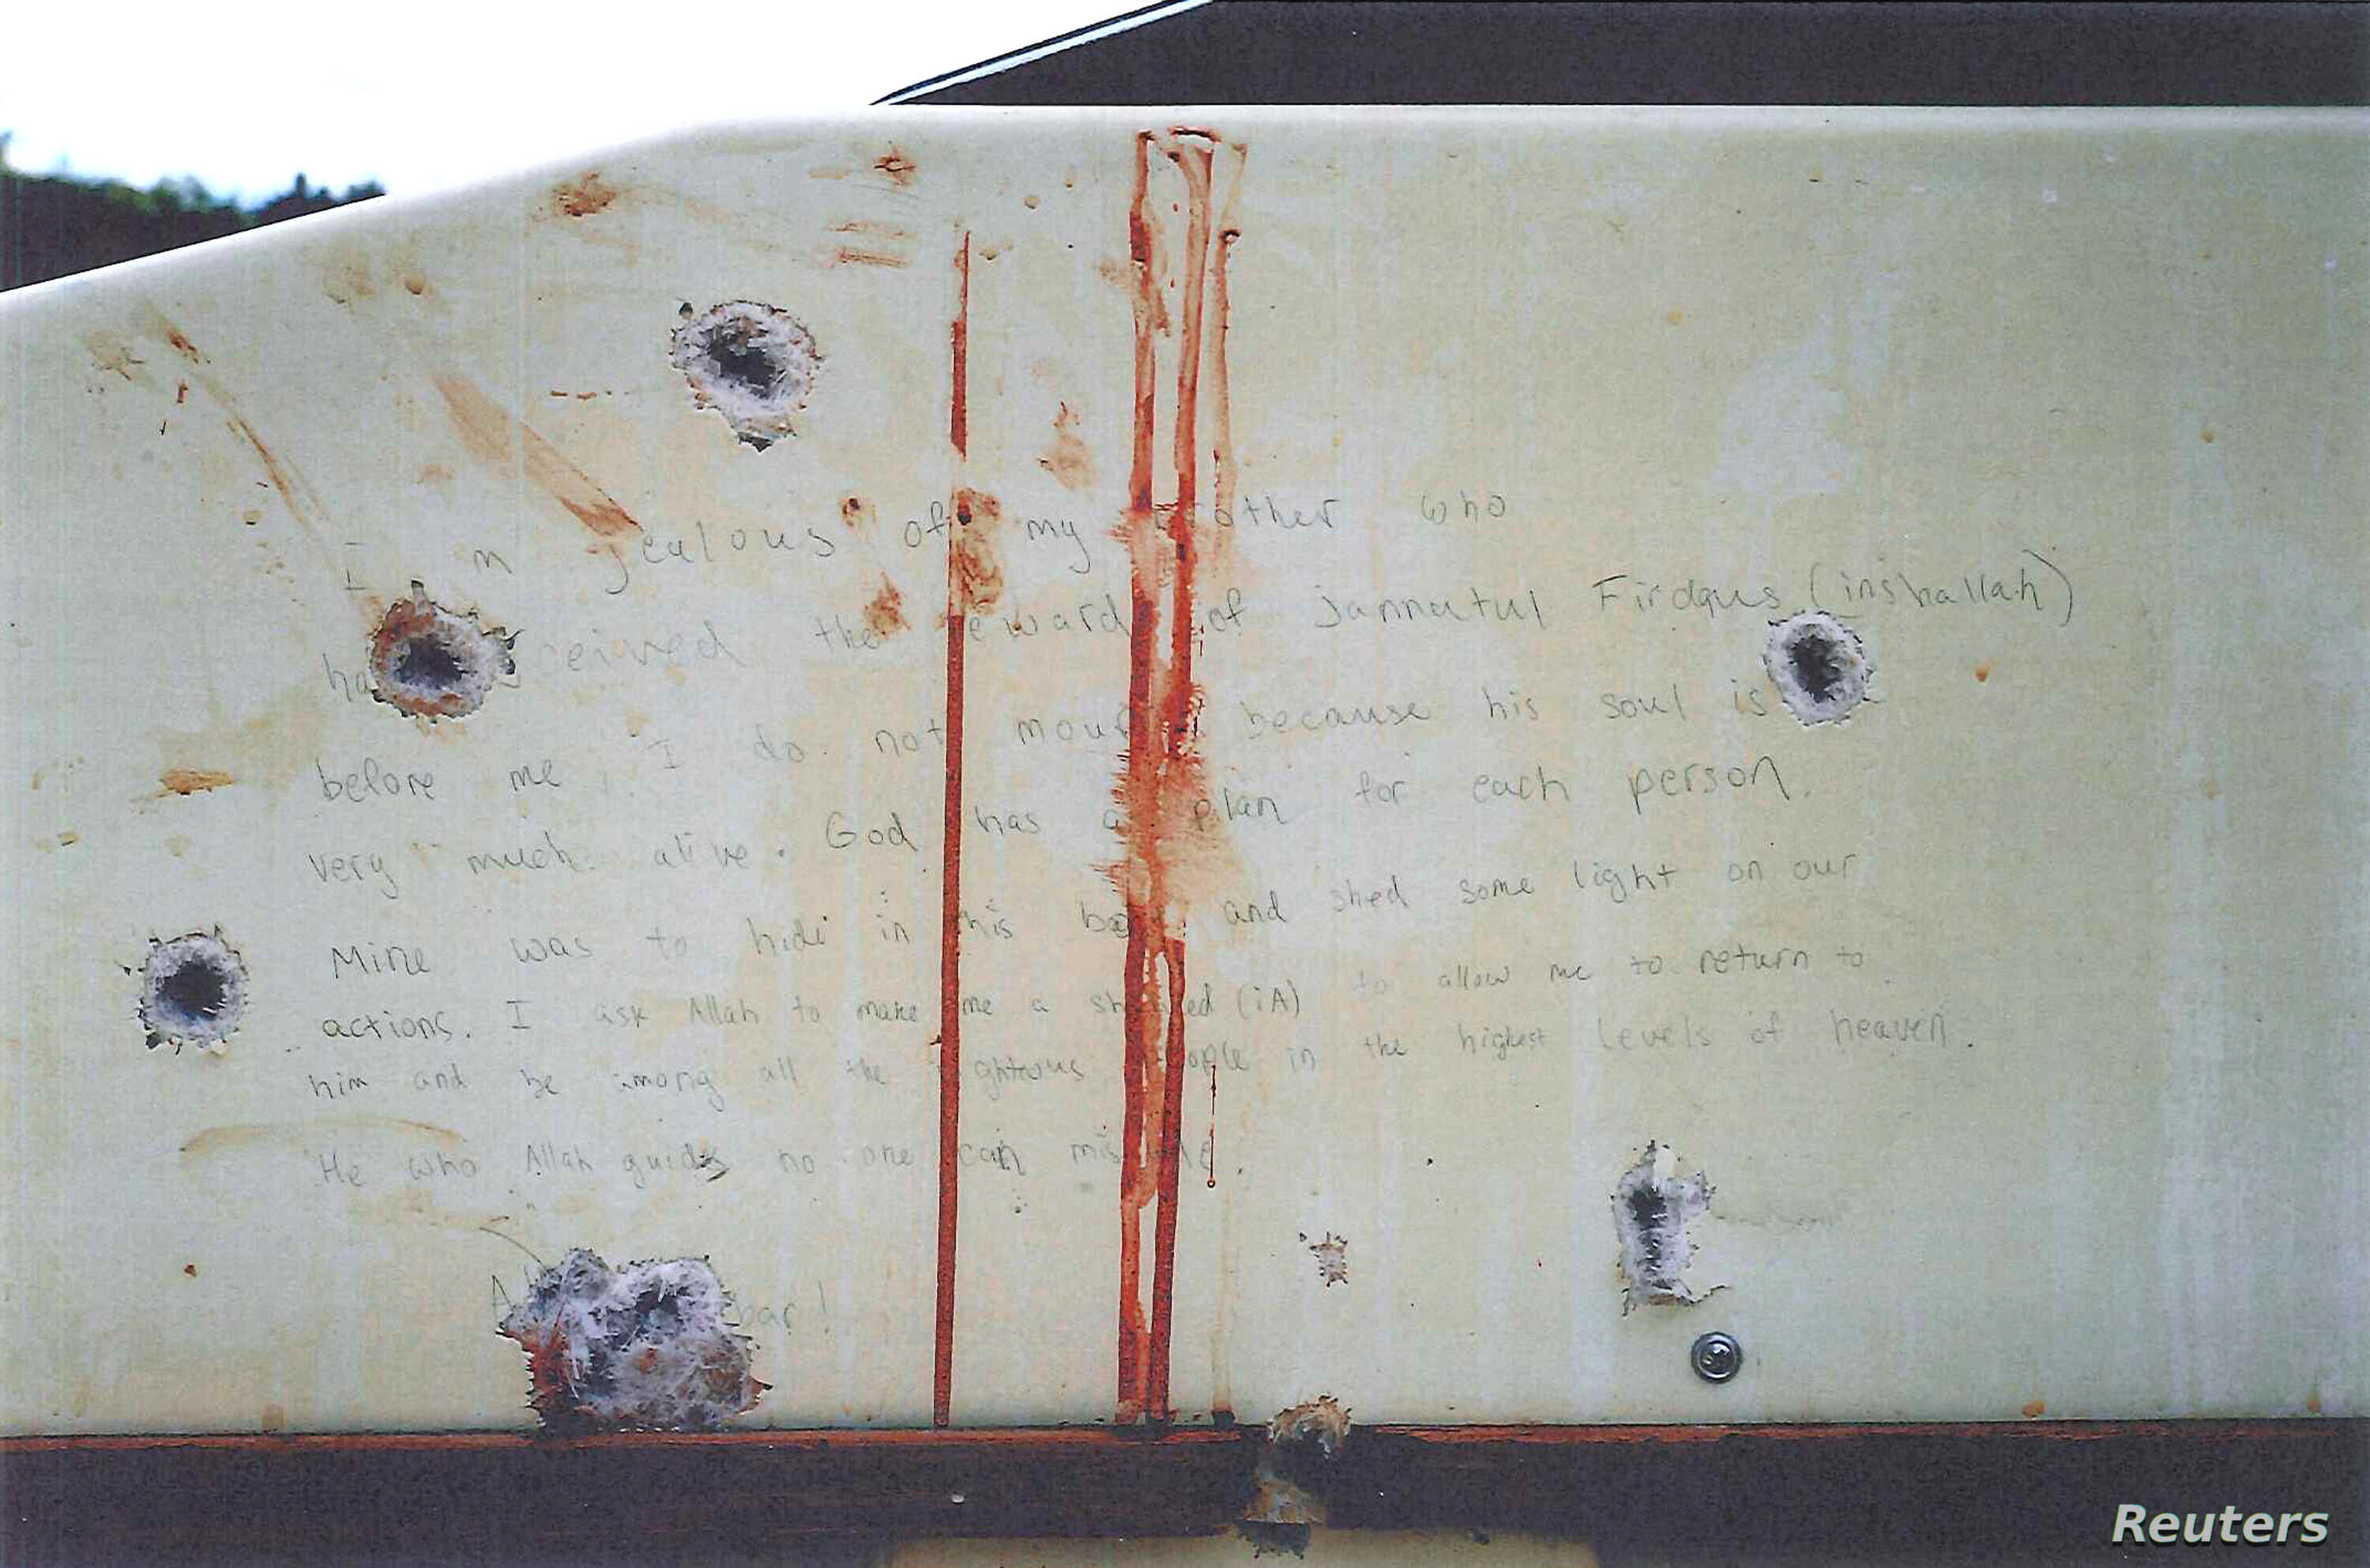 Jury in Marathon Bombing Trial Sees Photos of Note in Boat | Voice